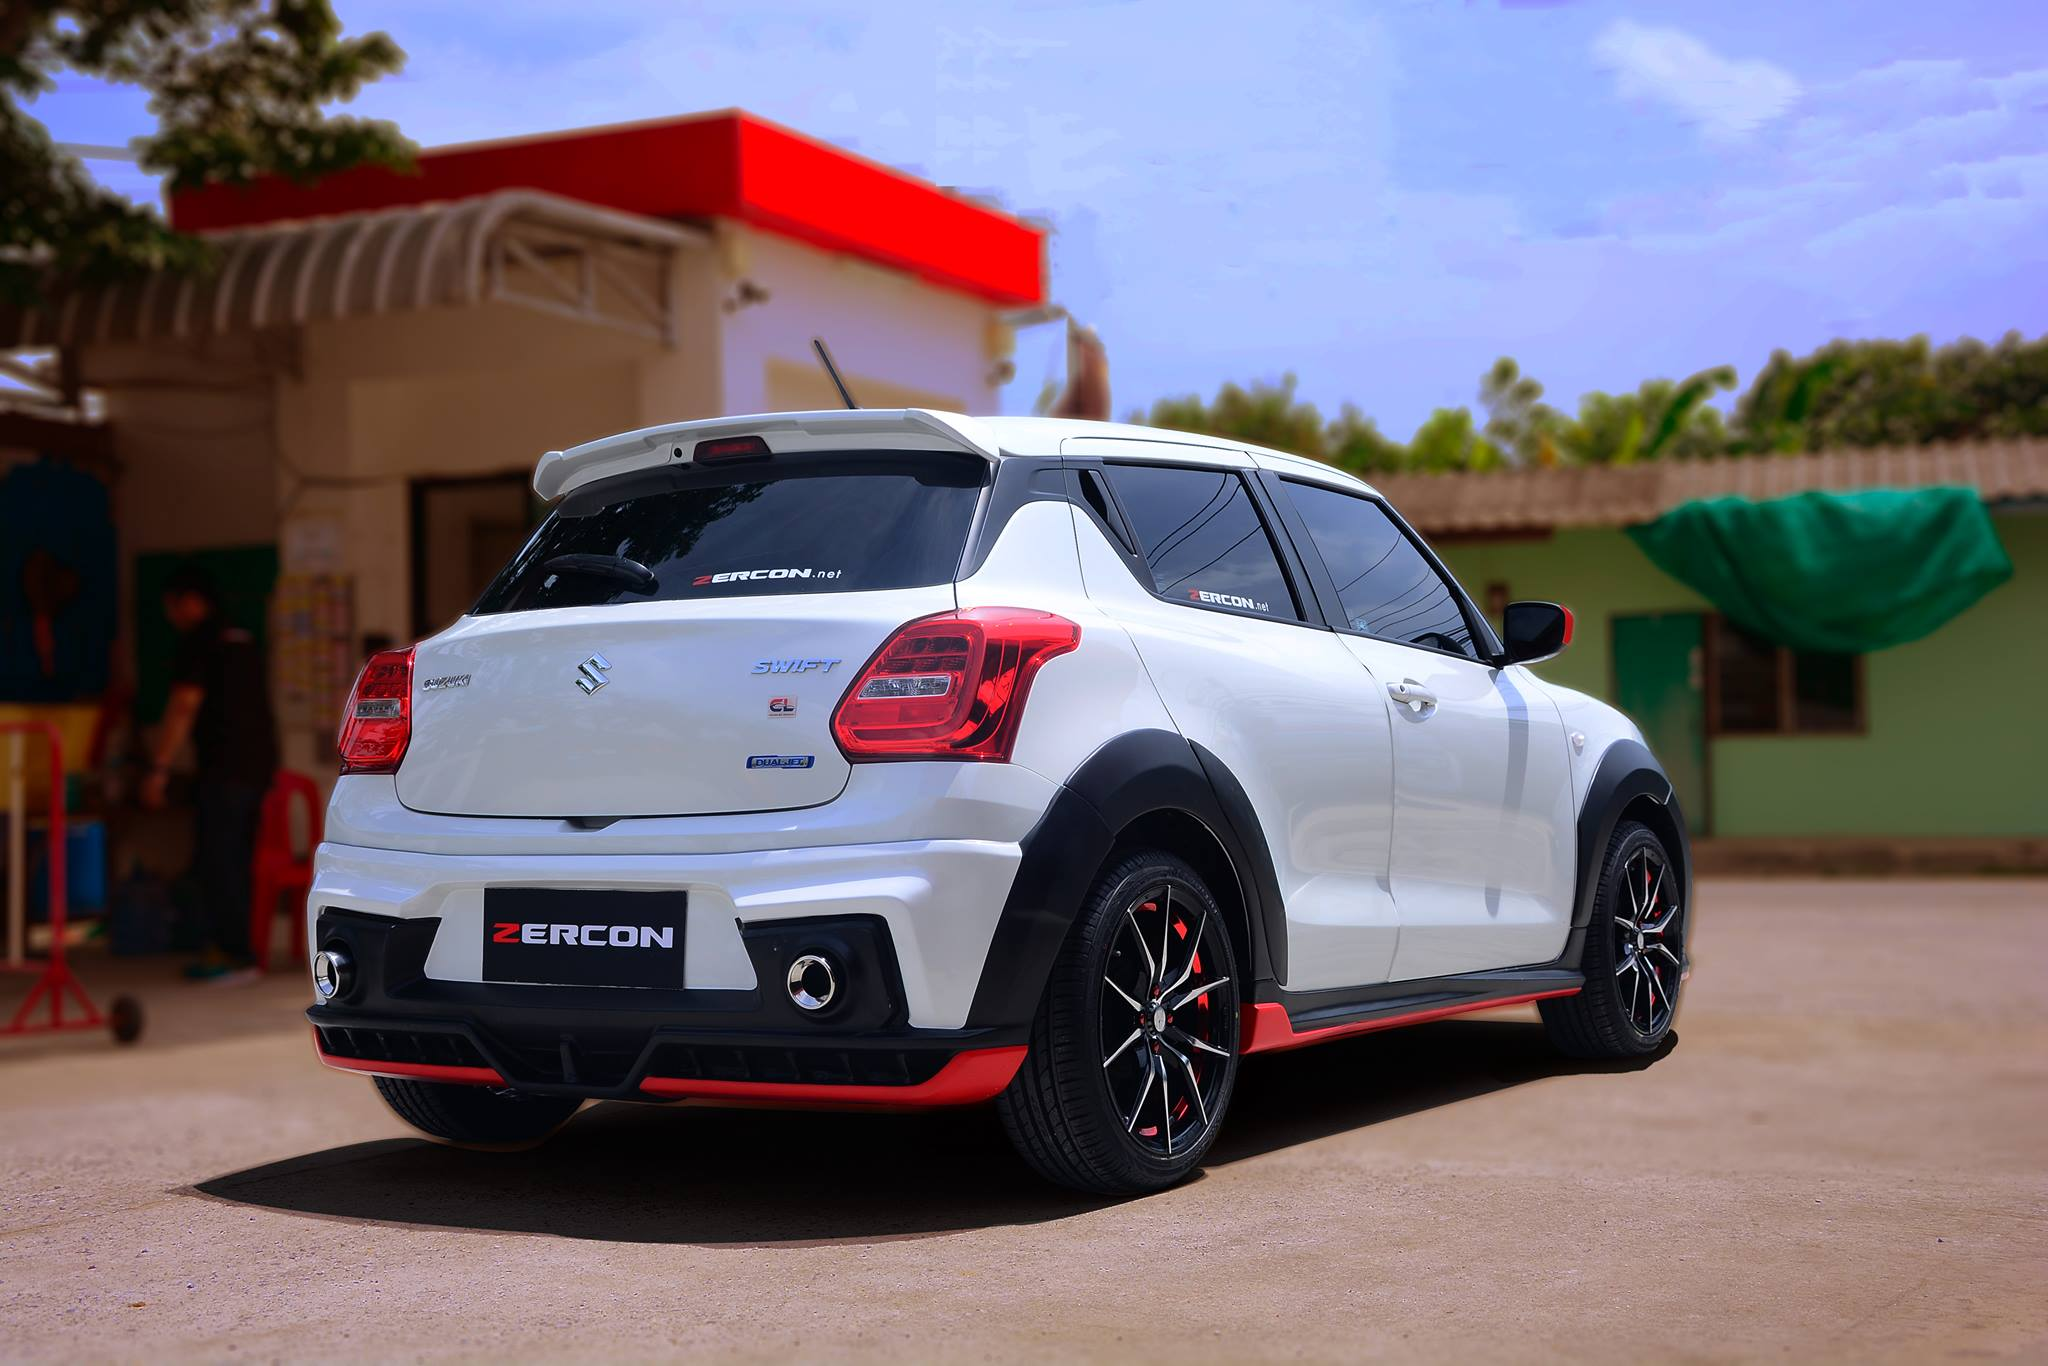 custom 2018 suzuki swift with zercon body kit from thailand. Black Bedroom Furniture Sets. Home Design Ideas